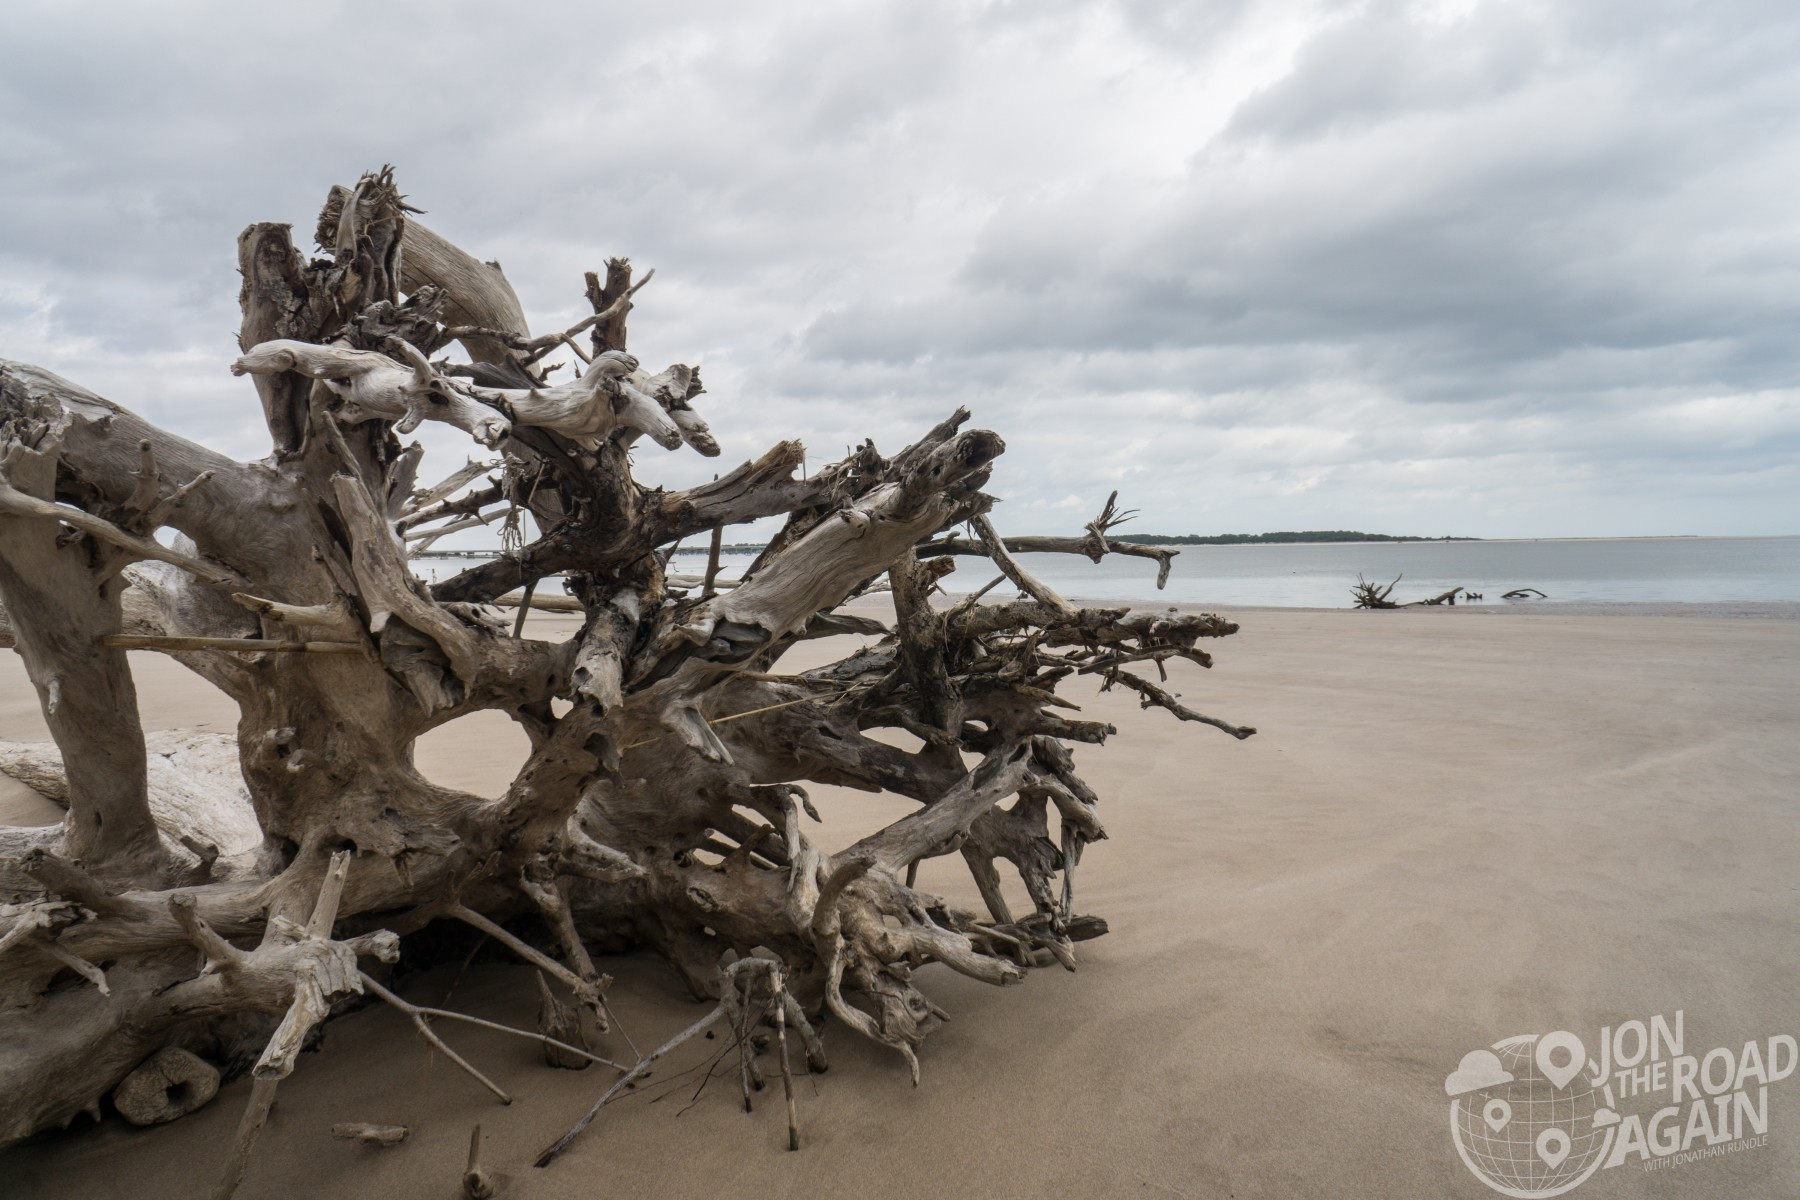 Boneyard beach at Big Talbot Island